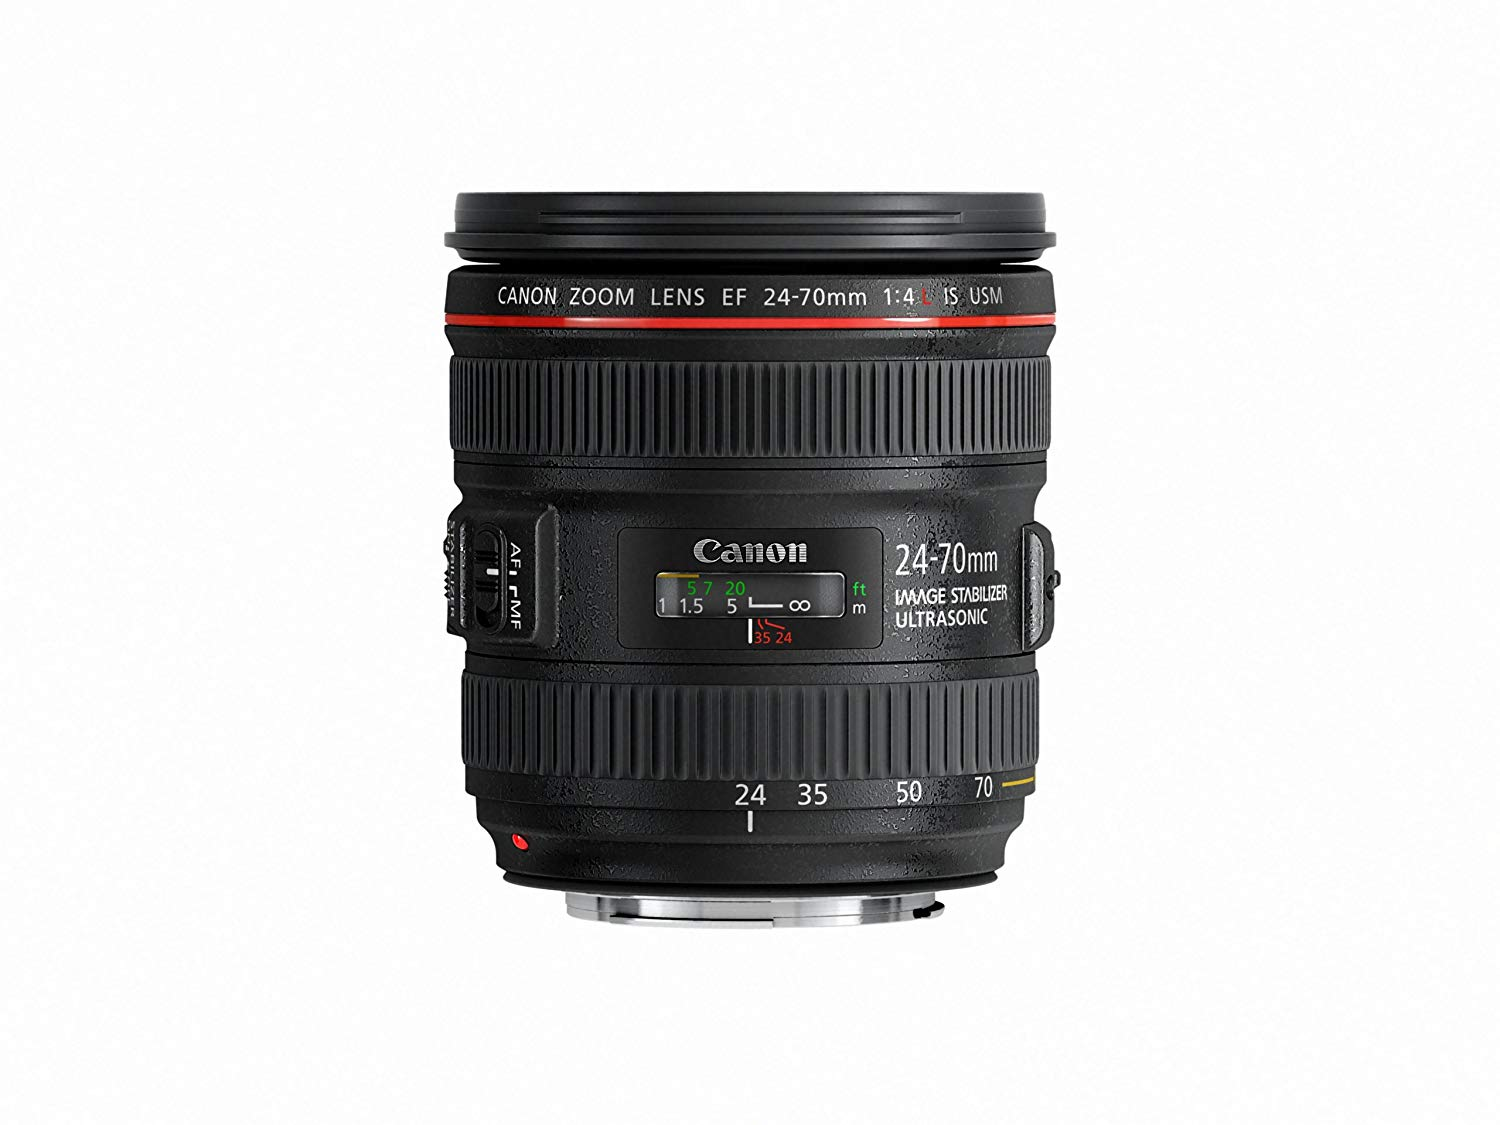 Canon EF 24-70mm f/4.0L IS USM Standard Zoom Lens - Buy on Amazon.com